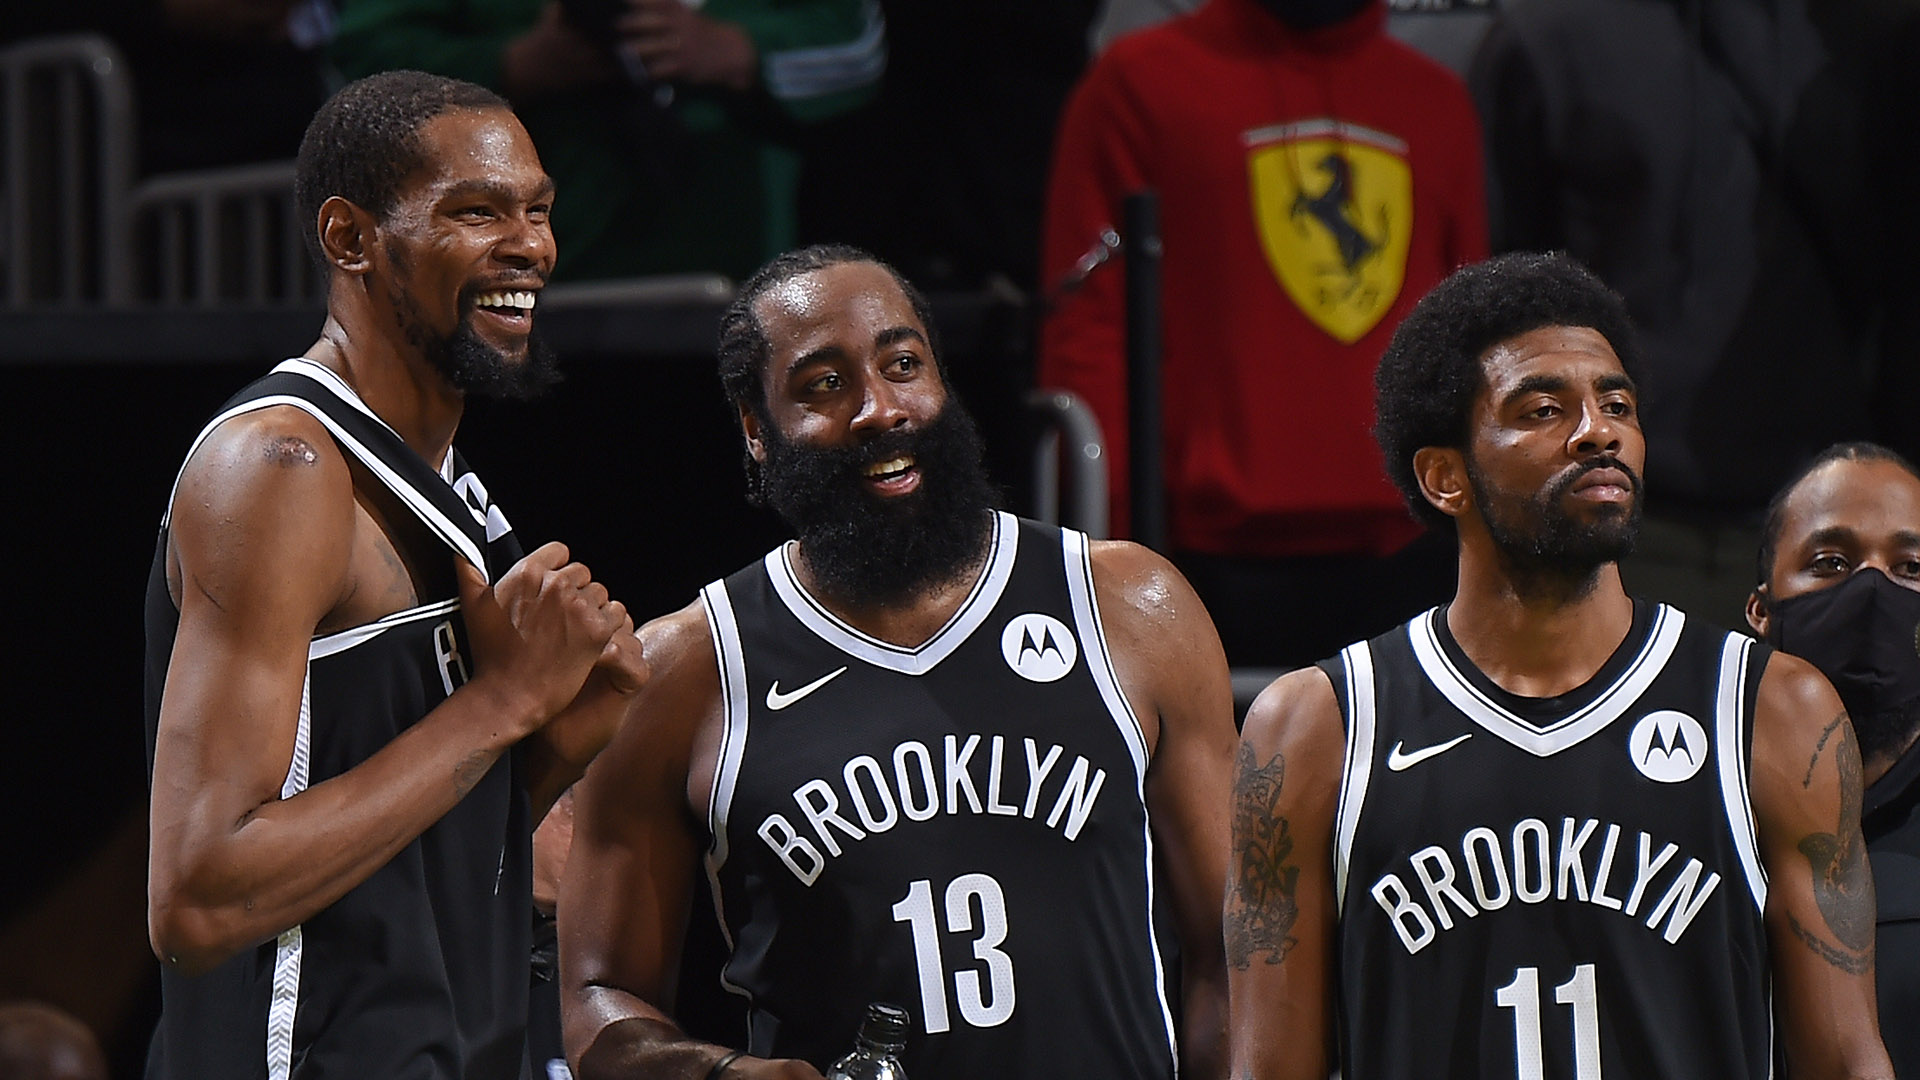 10 key questions: The Nets are clearly the team to beat in 2021-22, agree or disagree?